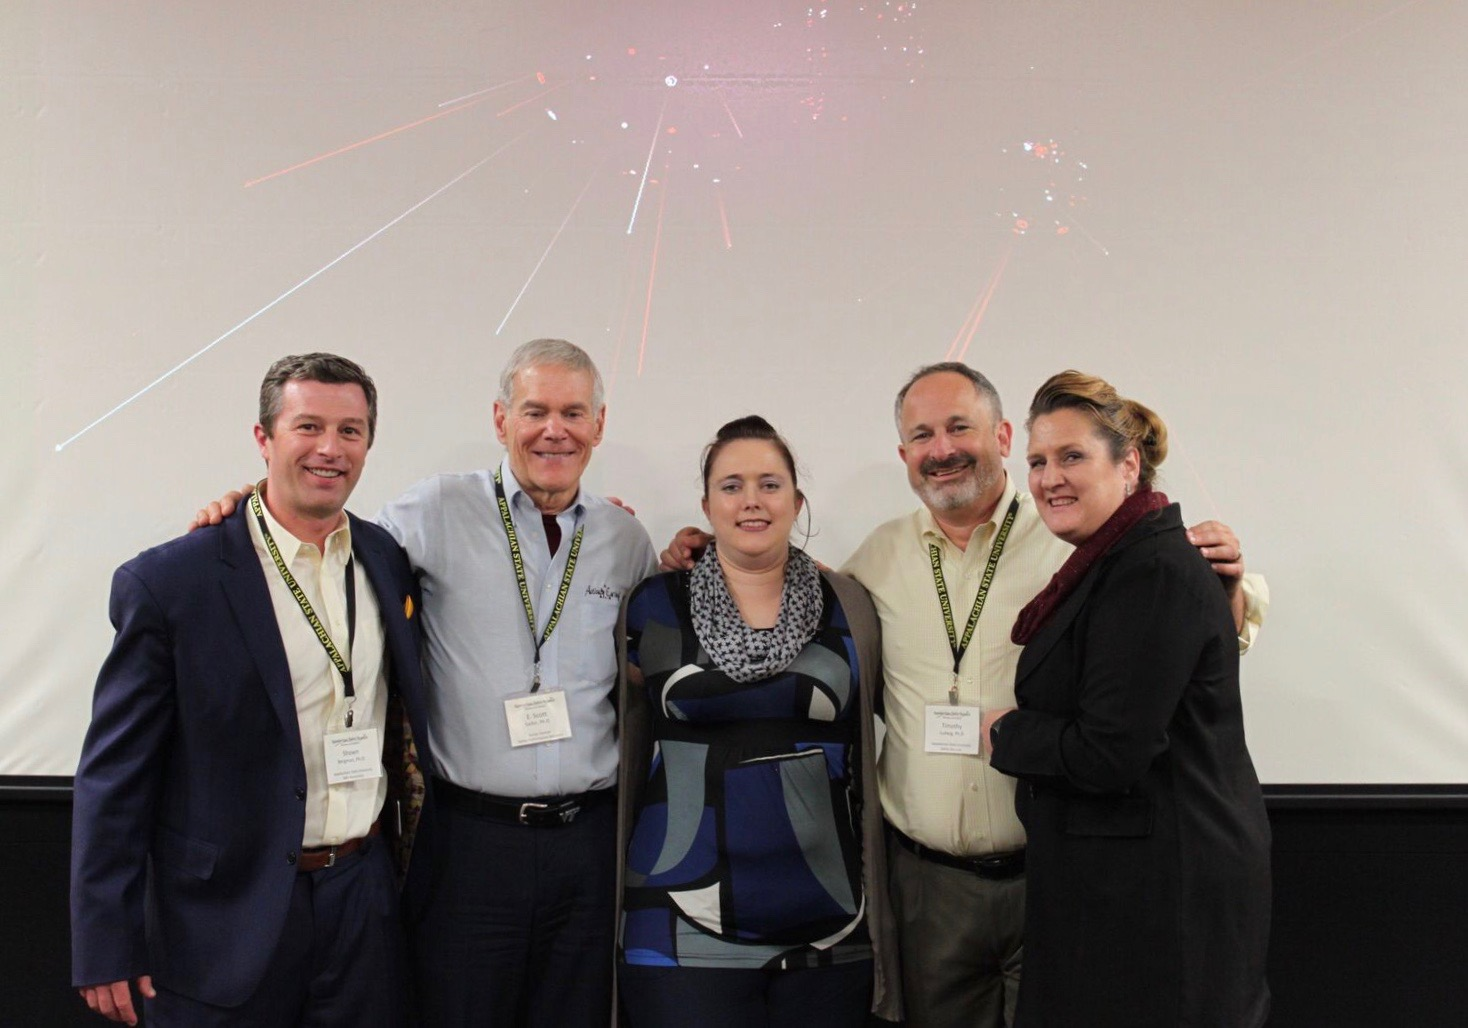 From left to right: Dr. Shawn Bergman, Dr. Scott Geller, Marnie Stein, Dr. Timothy Ludwig, and Connie Engelbrecht